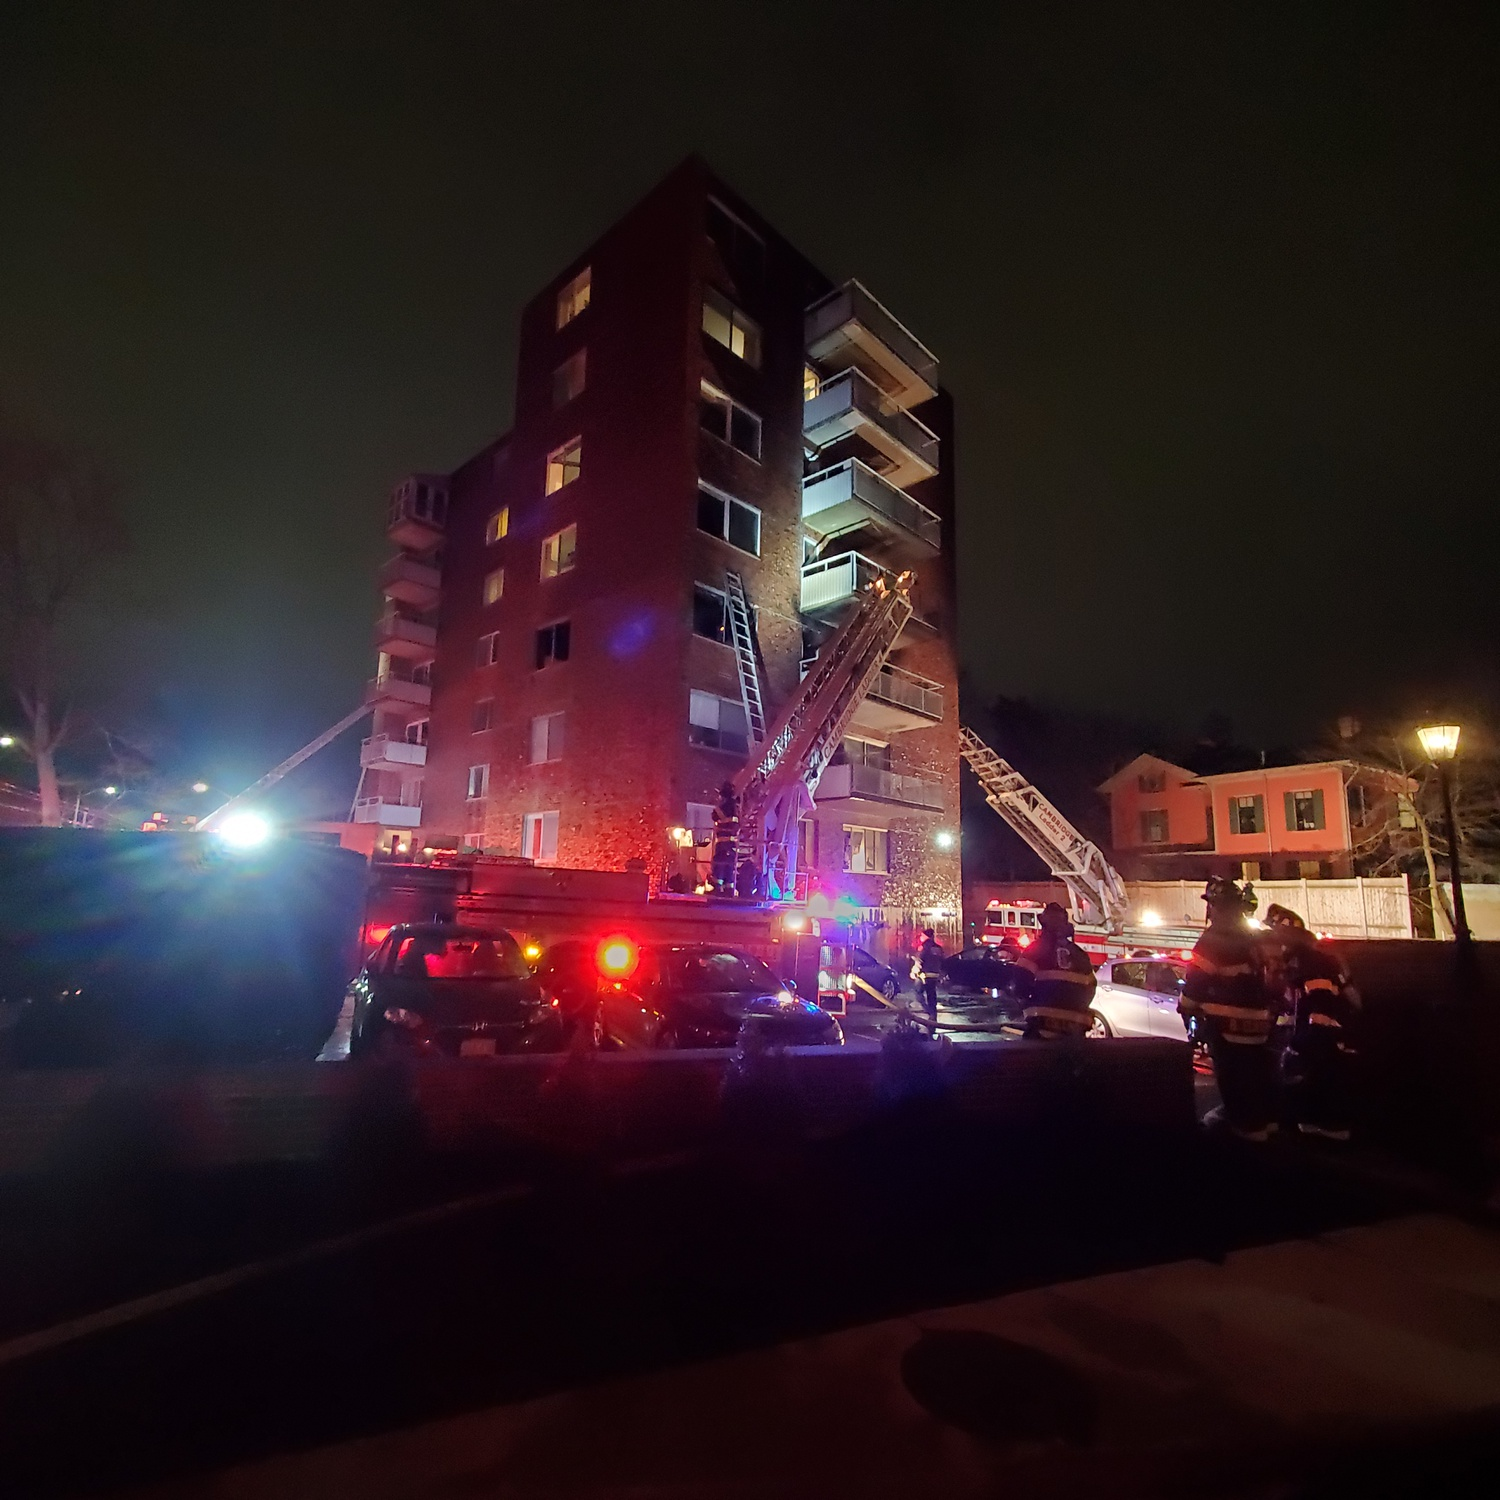 A fire at 14 Concord Ave. sparked last week by a defective refrigerator compressor in a third-floor apartment displaced 100 residents.